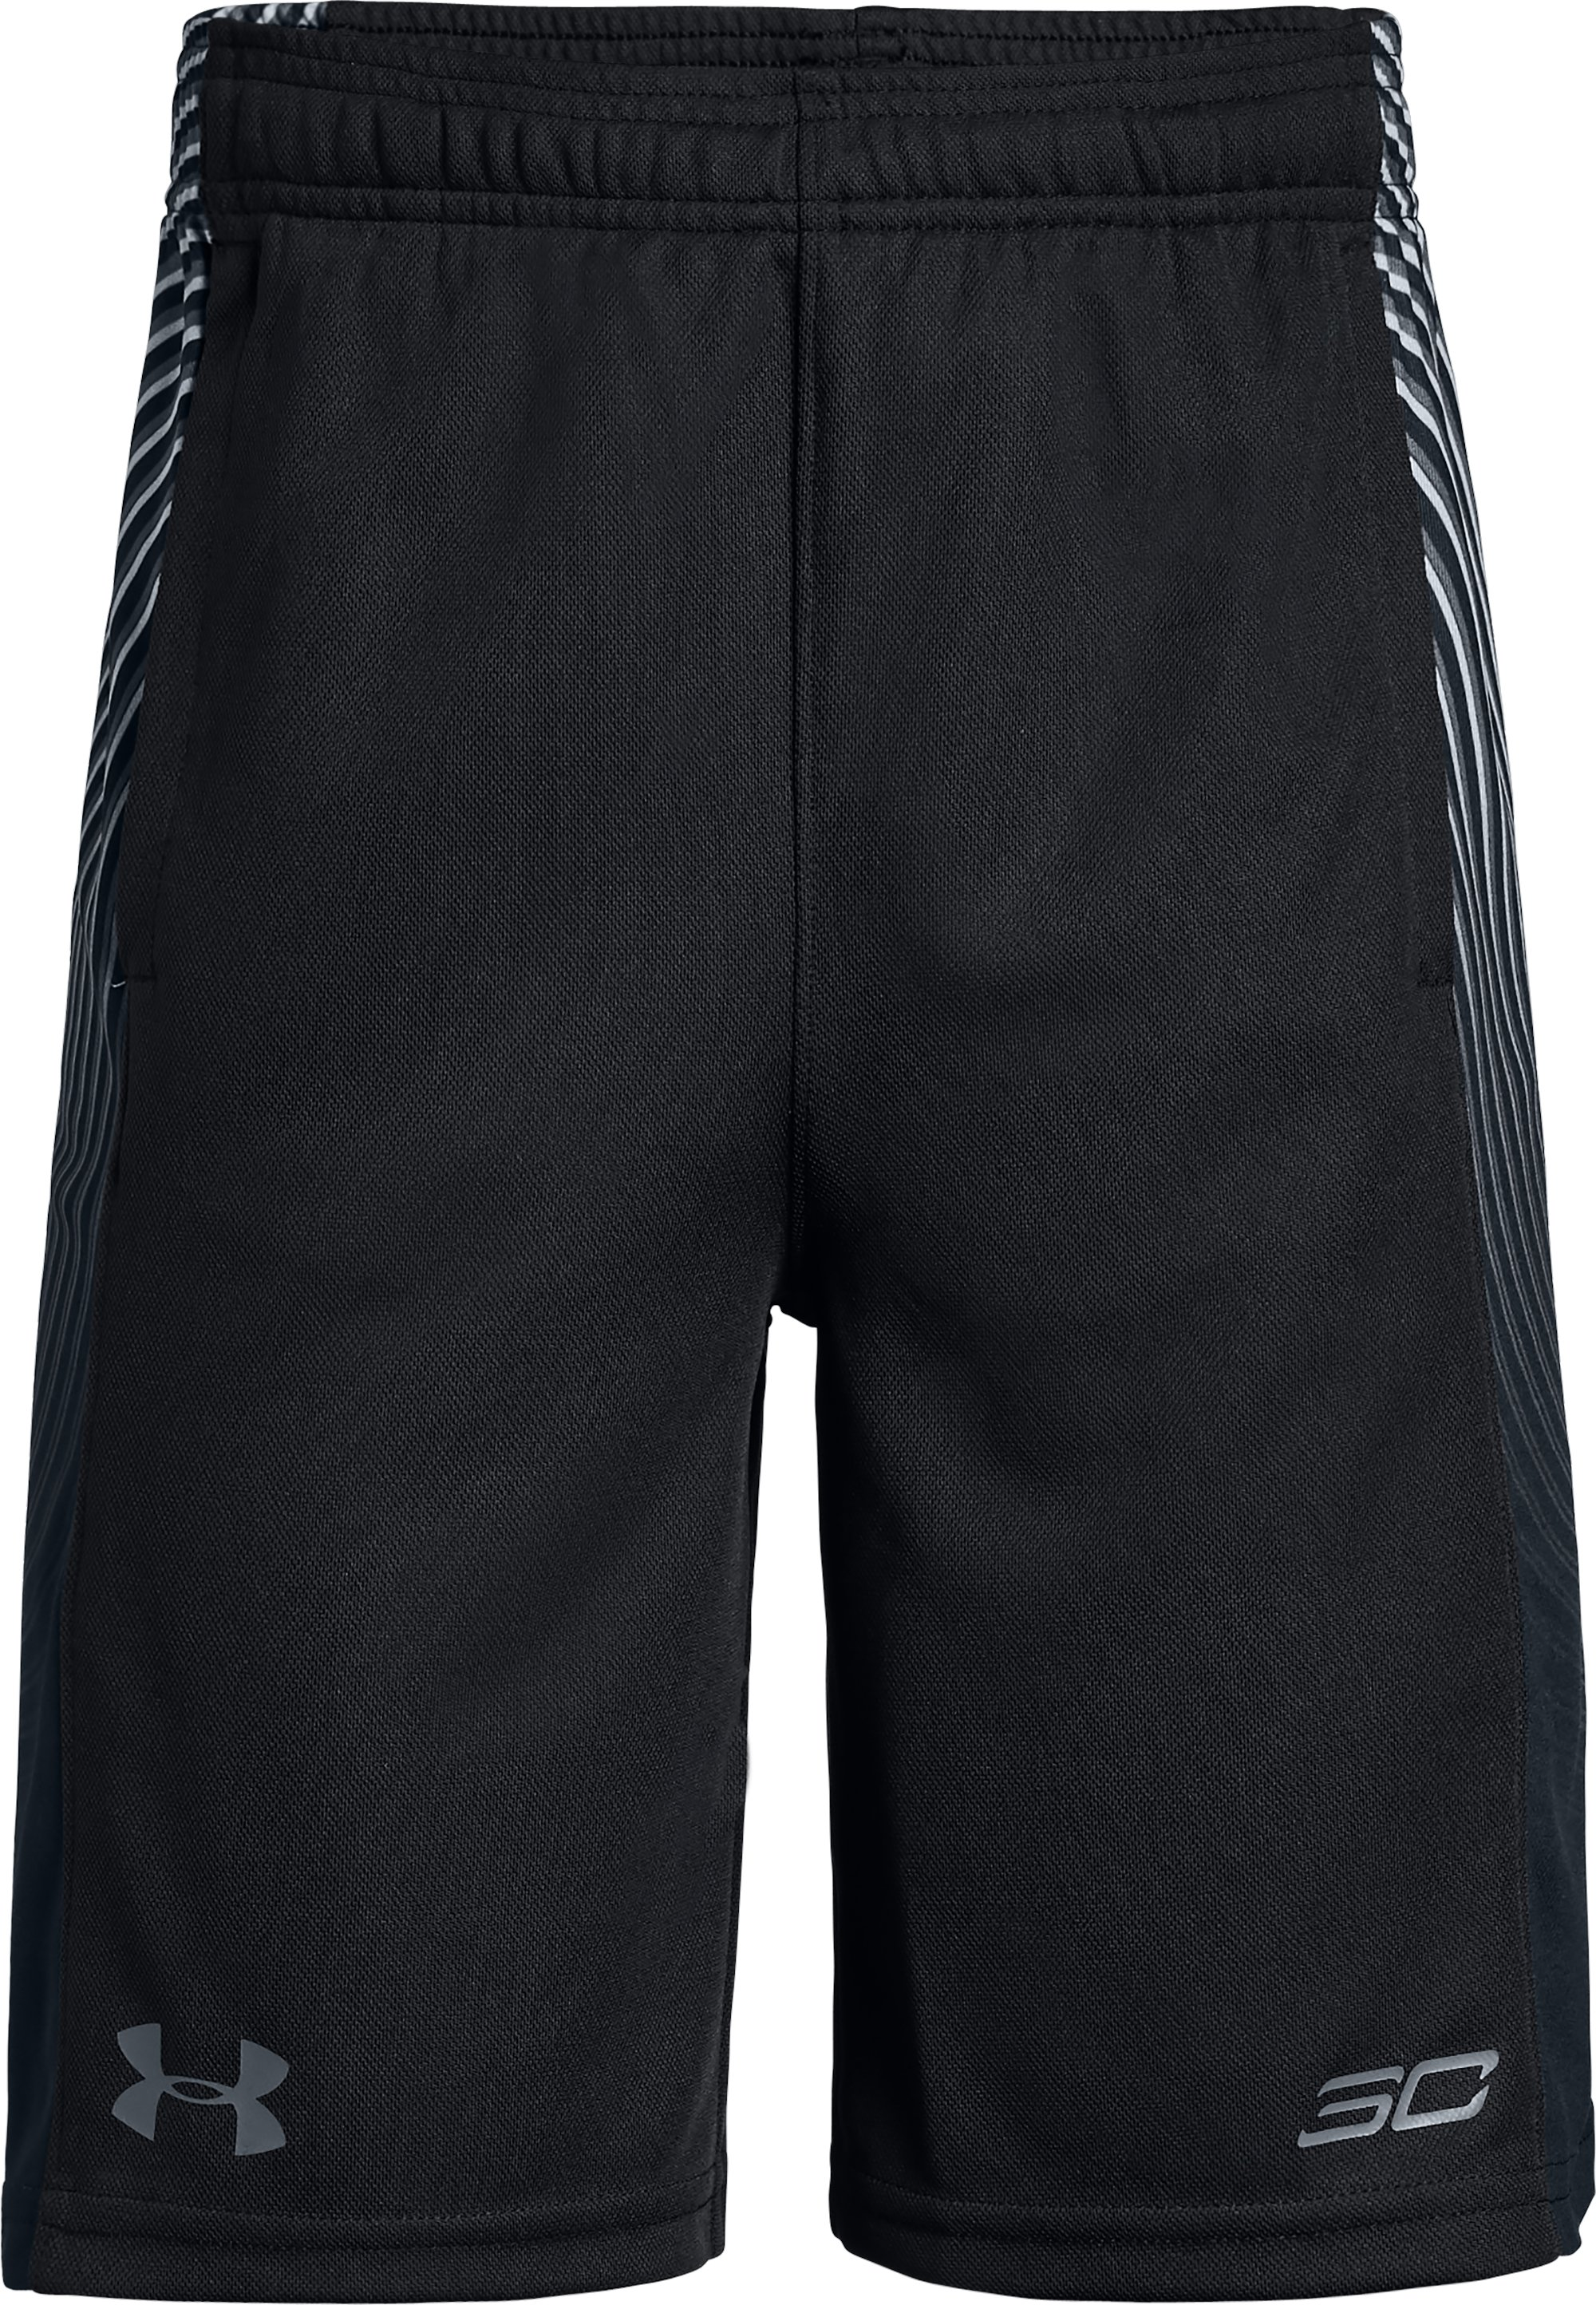 Boys' SC30 Waves Shorts, Black